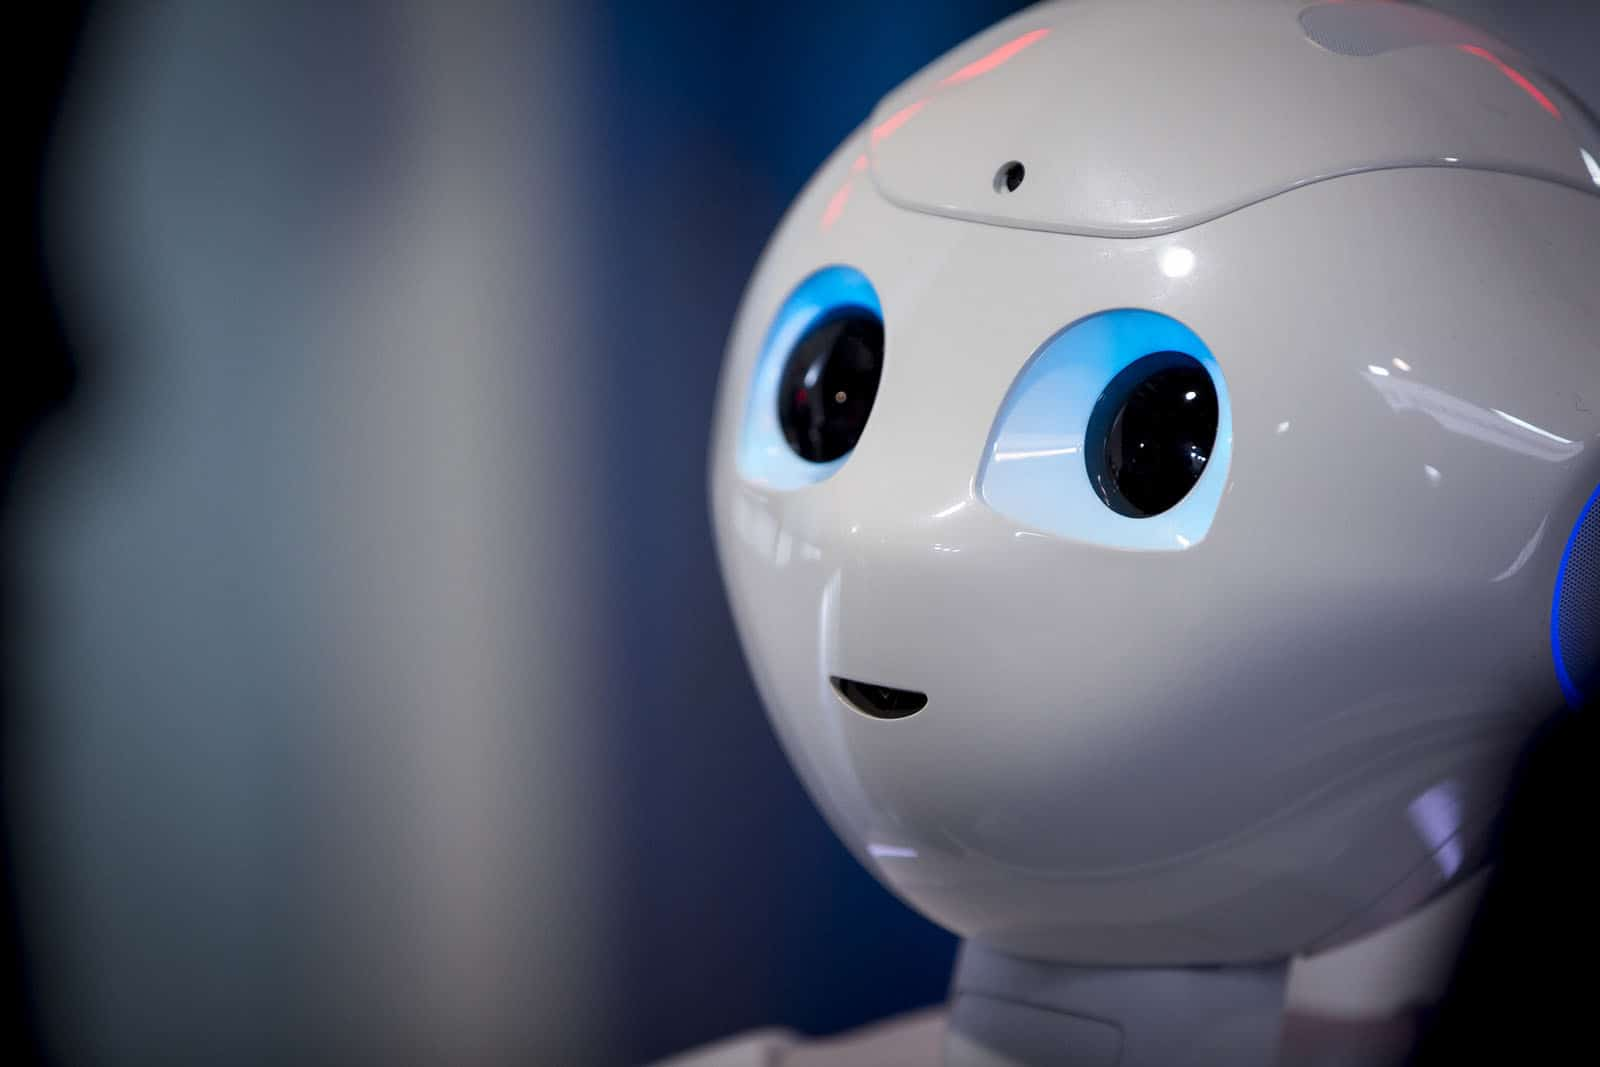 Robot Pepper en Mobile World Congress y 4YFN 2018 en Barcelona